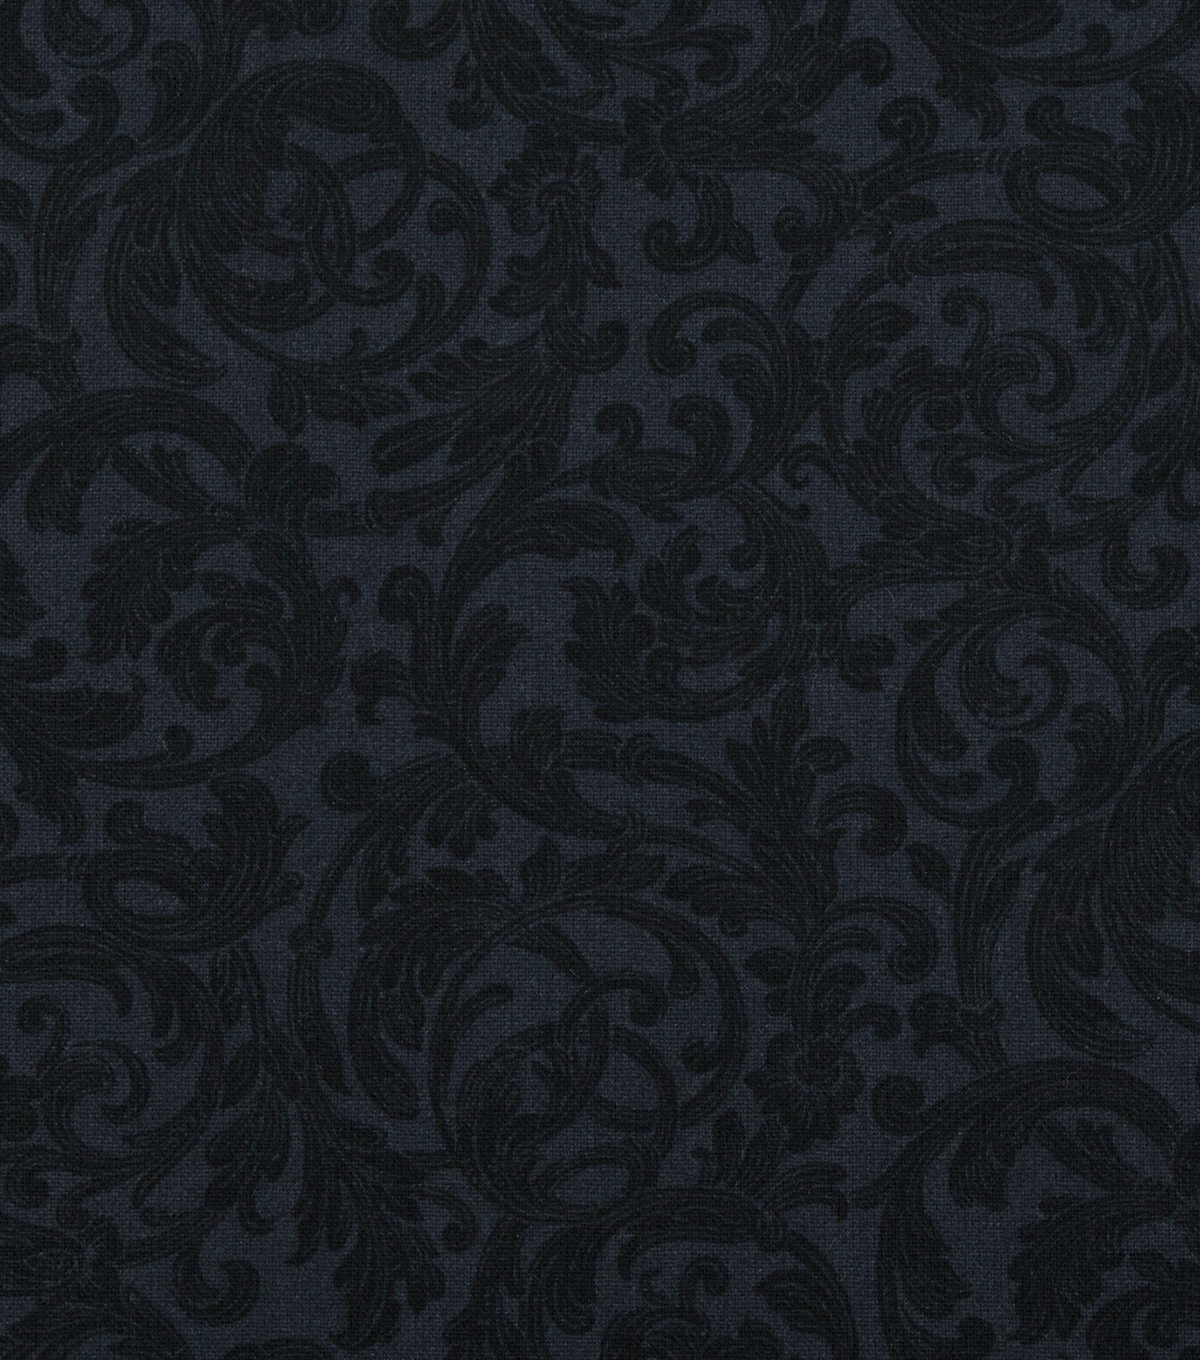 Keepsake Calico™ Cotton Fabric 108''-Black Floral Scroll